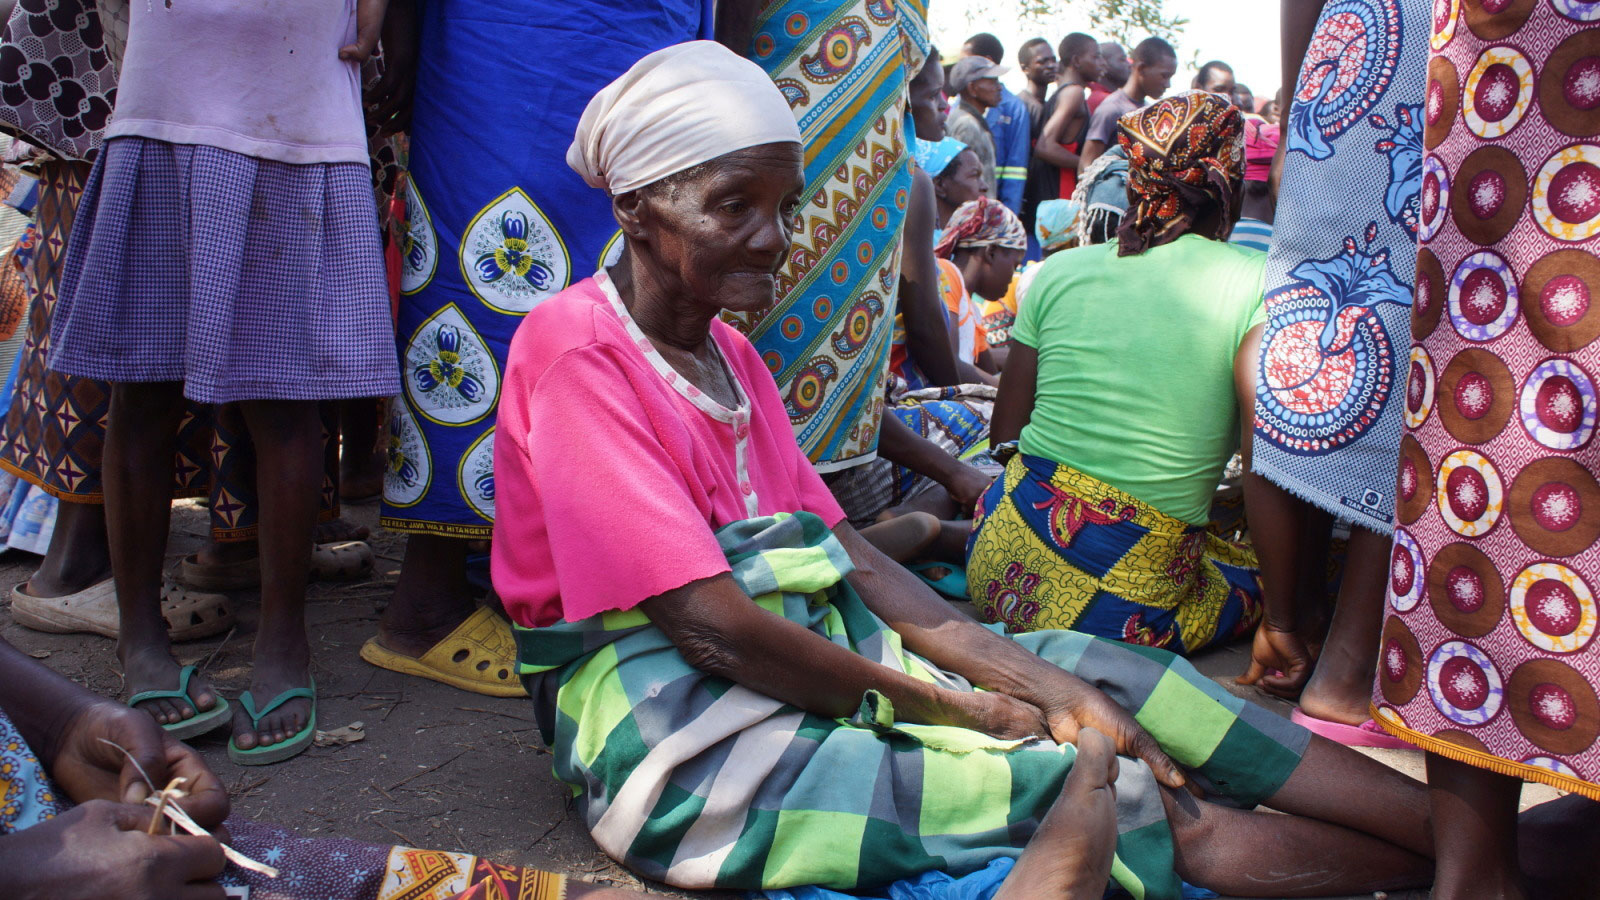 c_C-Briade_HI__An-older-woman-sits-down-to-rest-while-waiting-in-line-for-humanitarian-aid-following-Cyclone-Idai-in-Mozambique.jpg